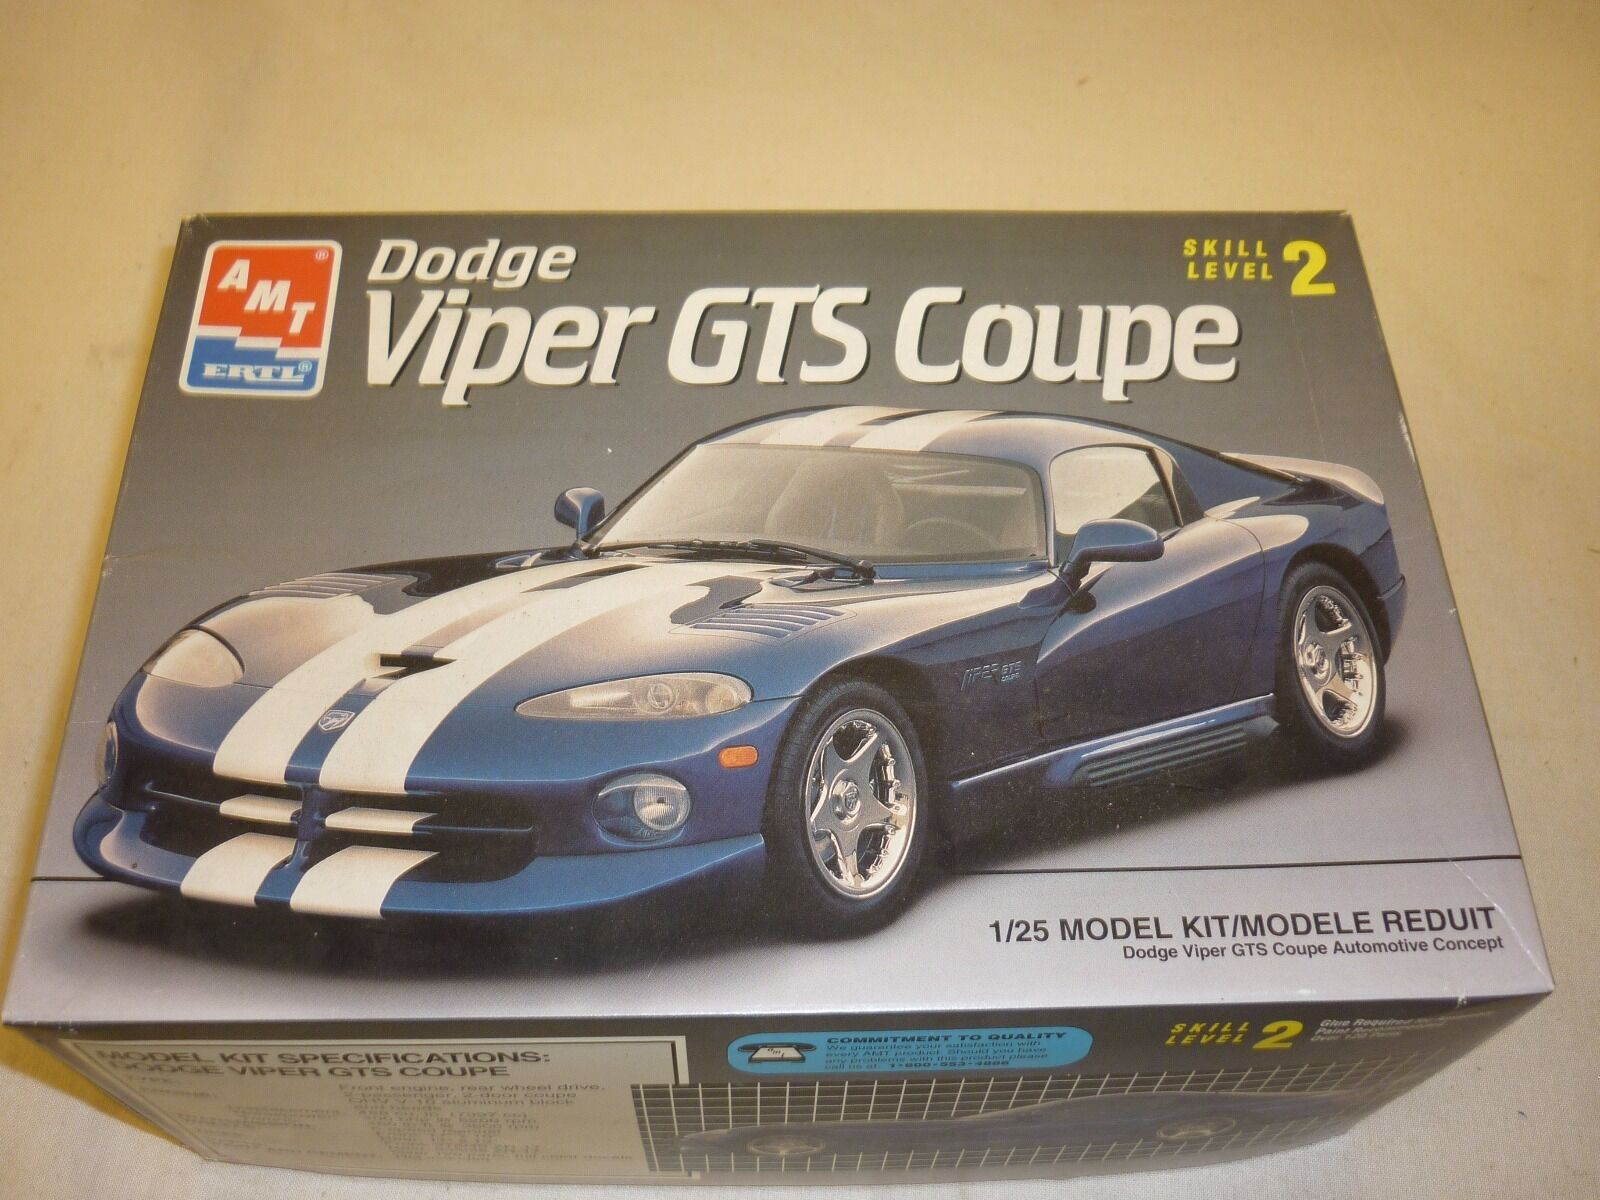 AMT un made plastic kit of a Dodge Viper GTS Coupe, boxed